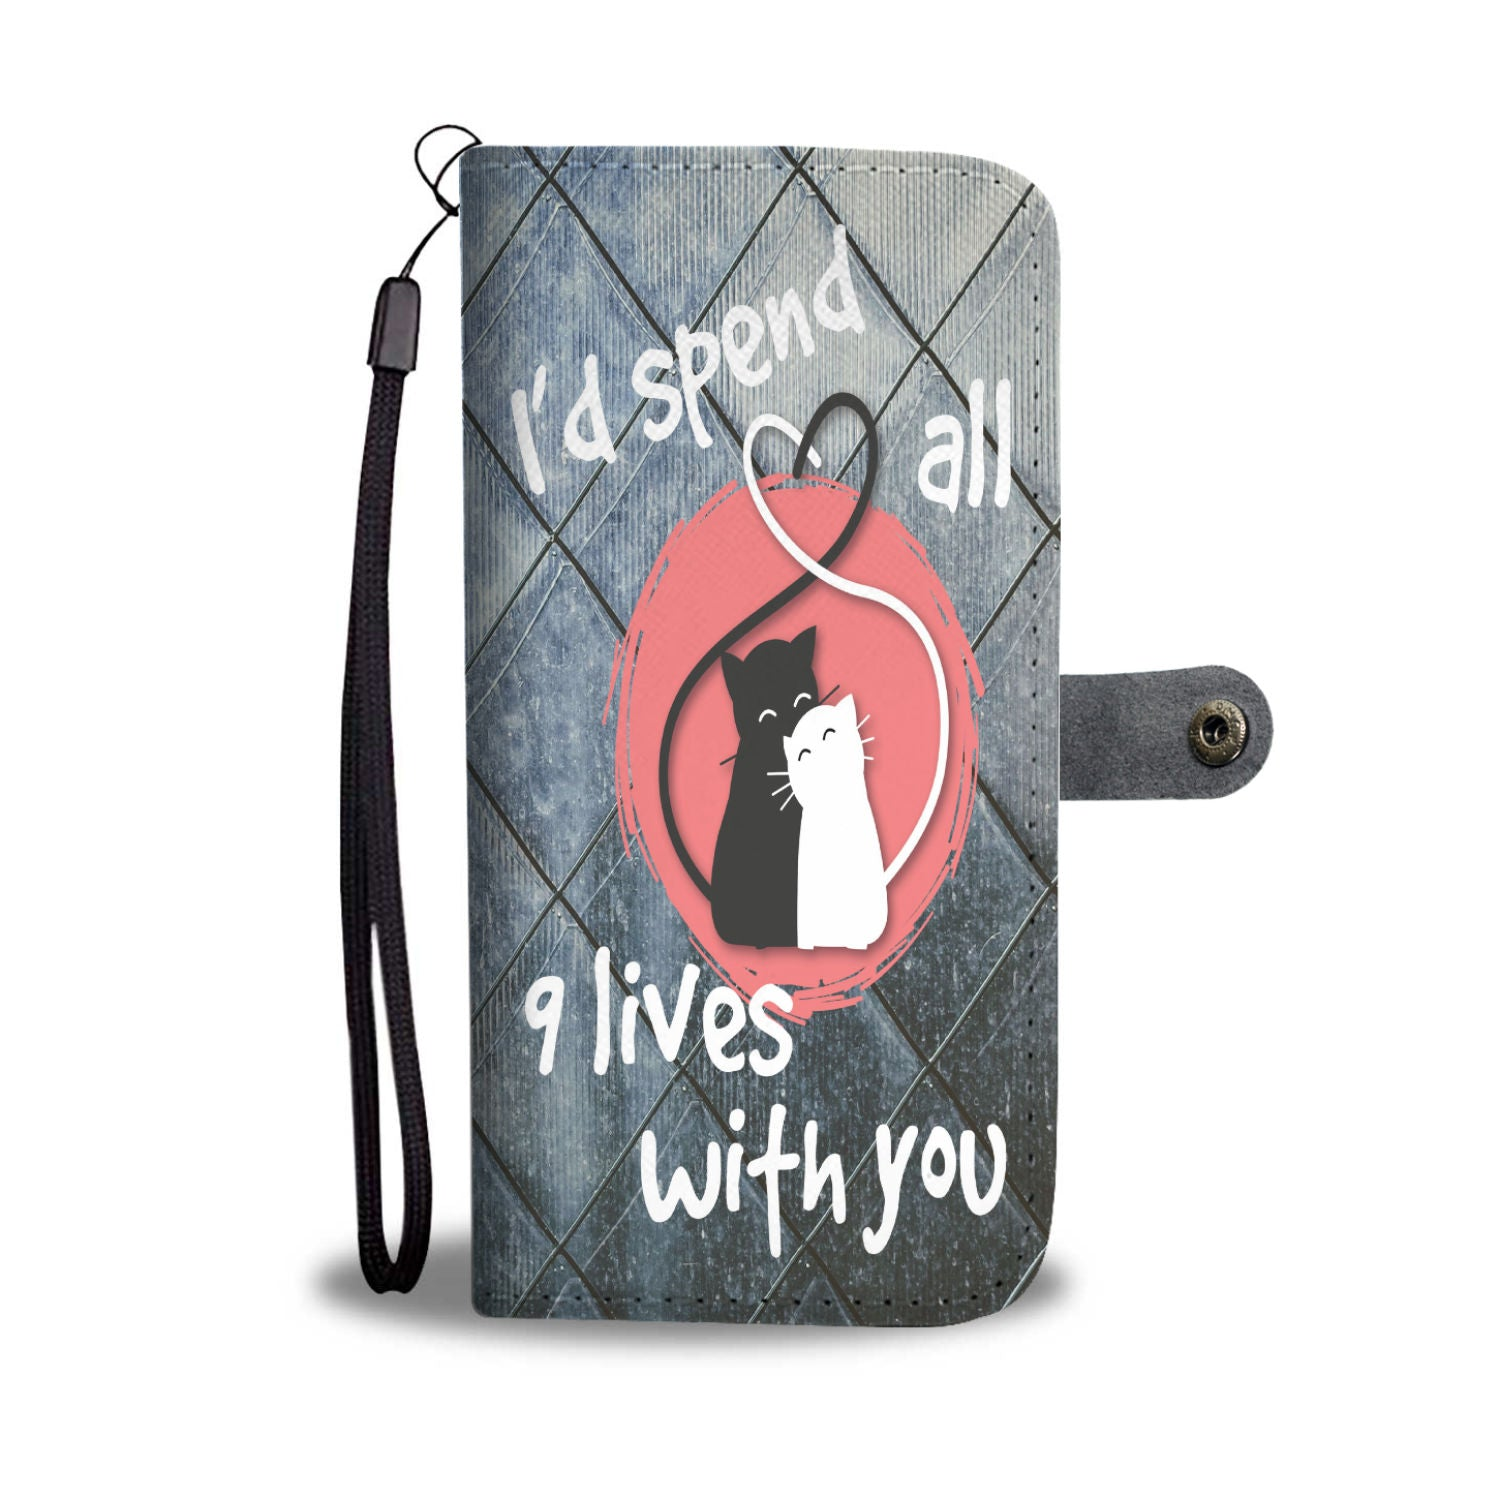 Custom Phone Wallet Available For All Phone Models I Spend All 9 Lives With You Phone Wallet